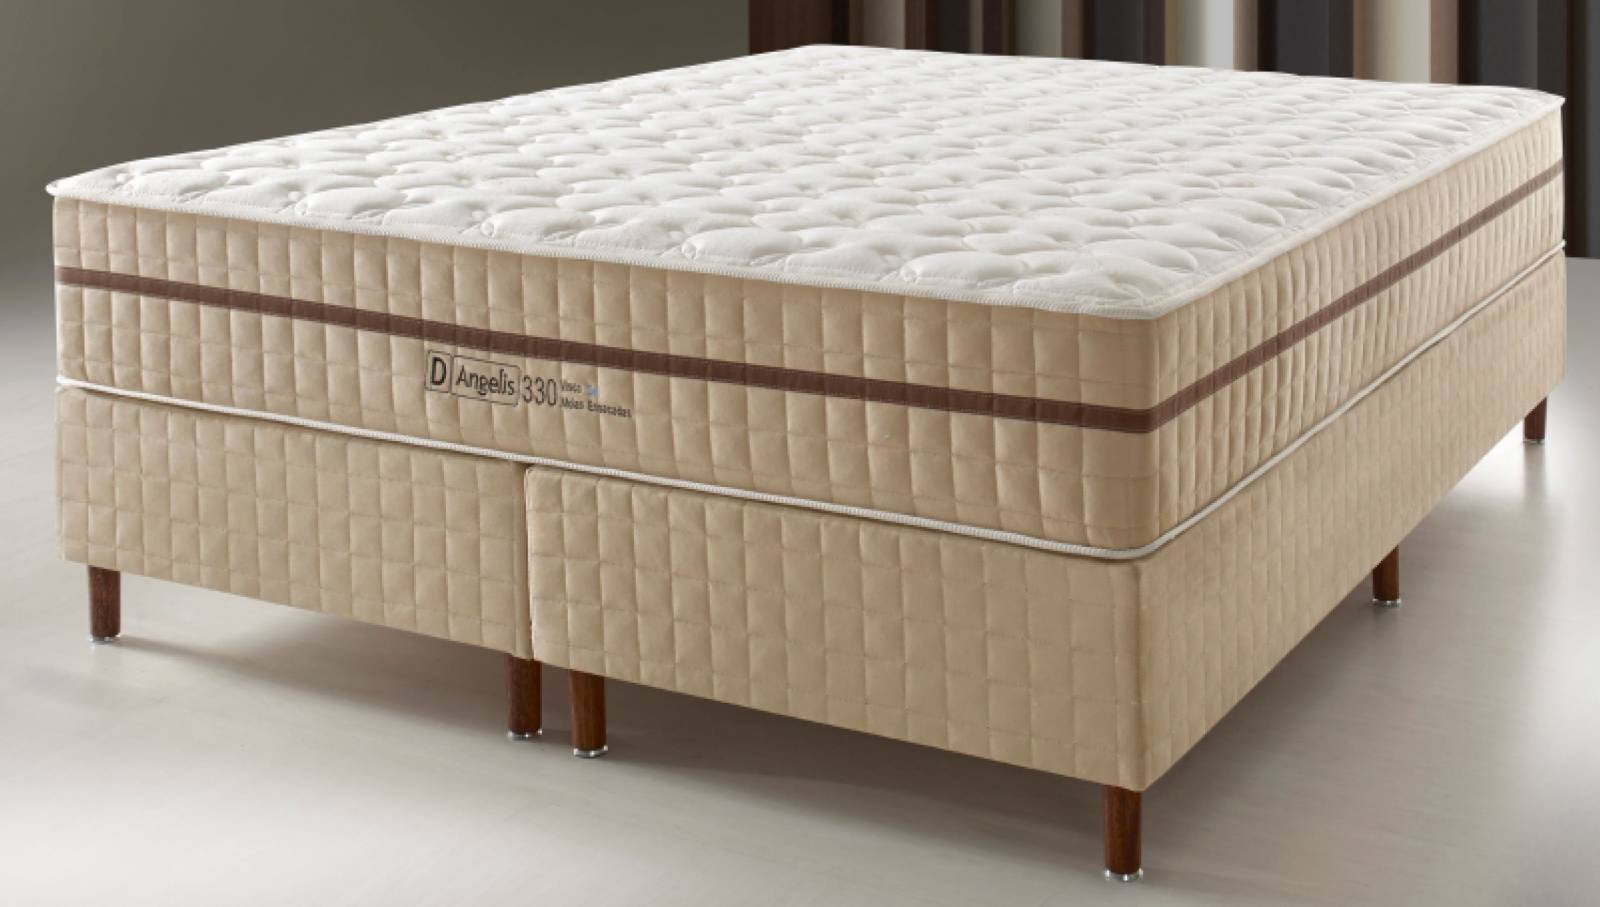 Conjunto Cama Box DG 330 Bege D'Angelis - All Home